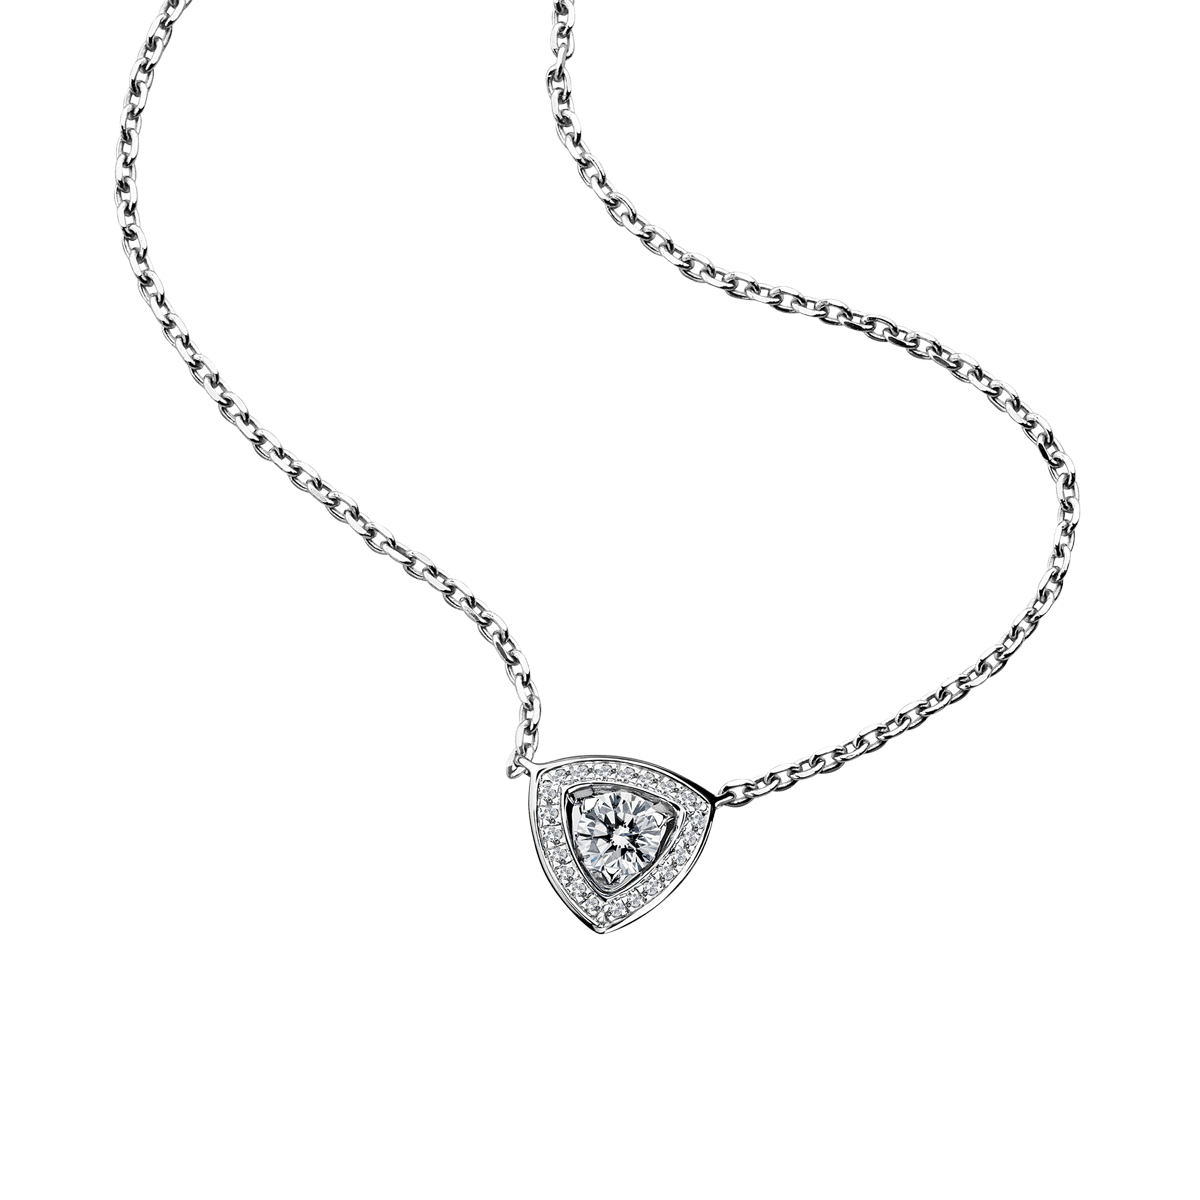 Dream & Love Pendant , white gold, central diamond 0,30 carat approximatively, diamonds pavement